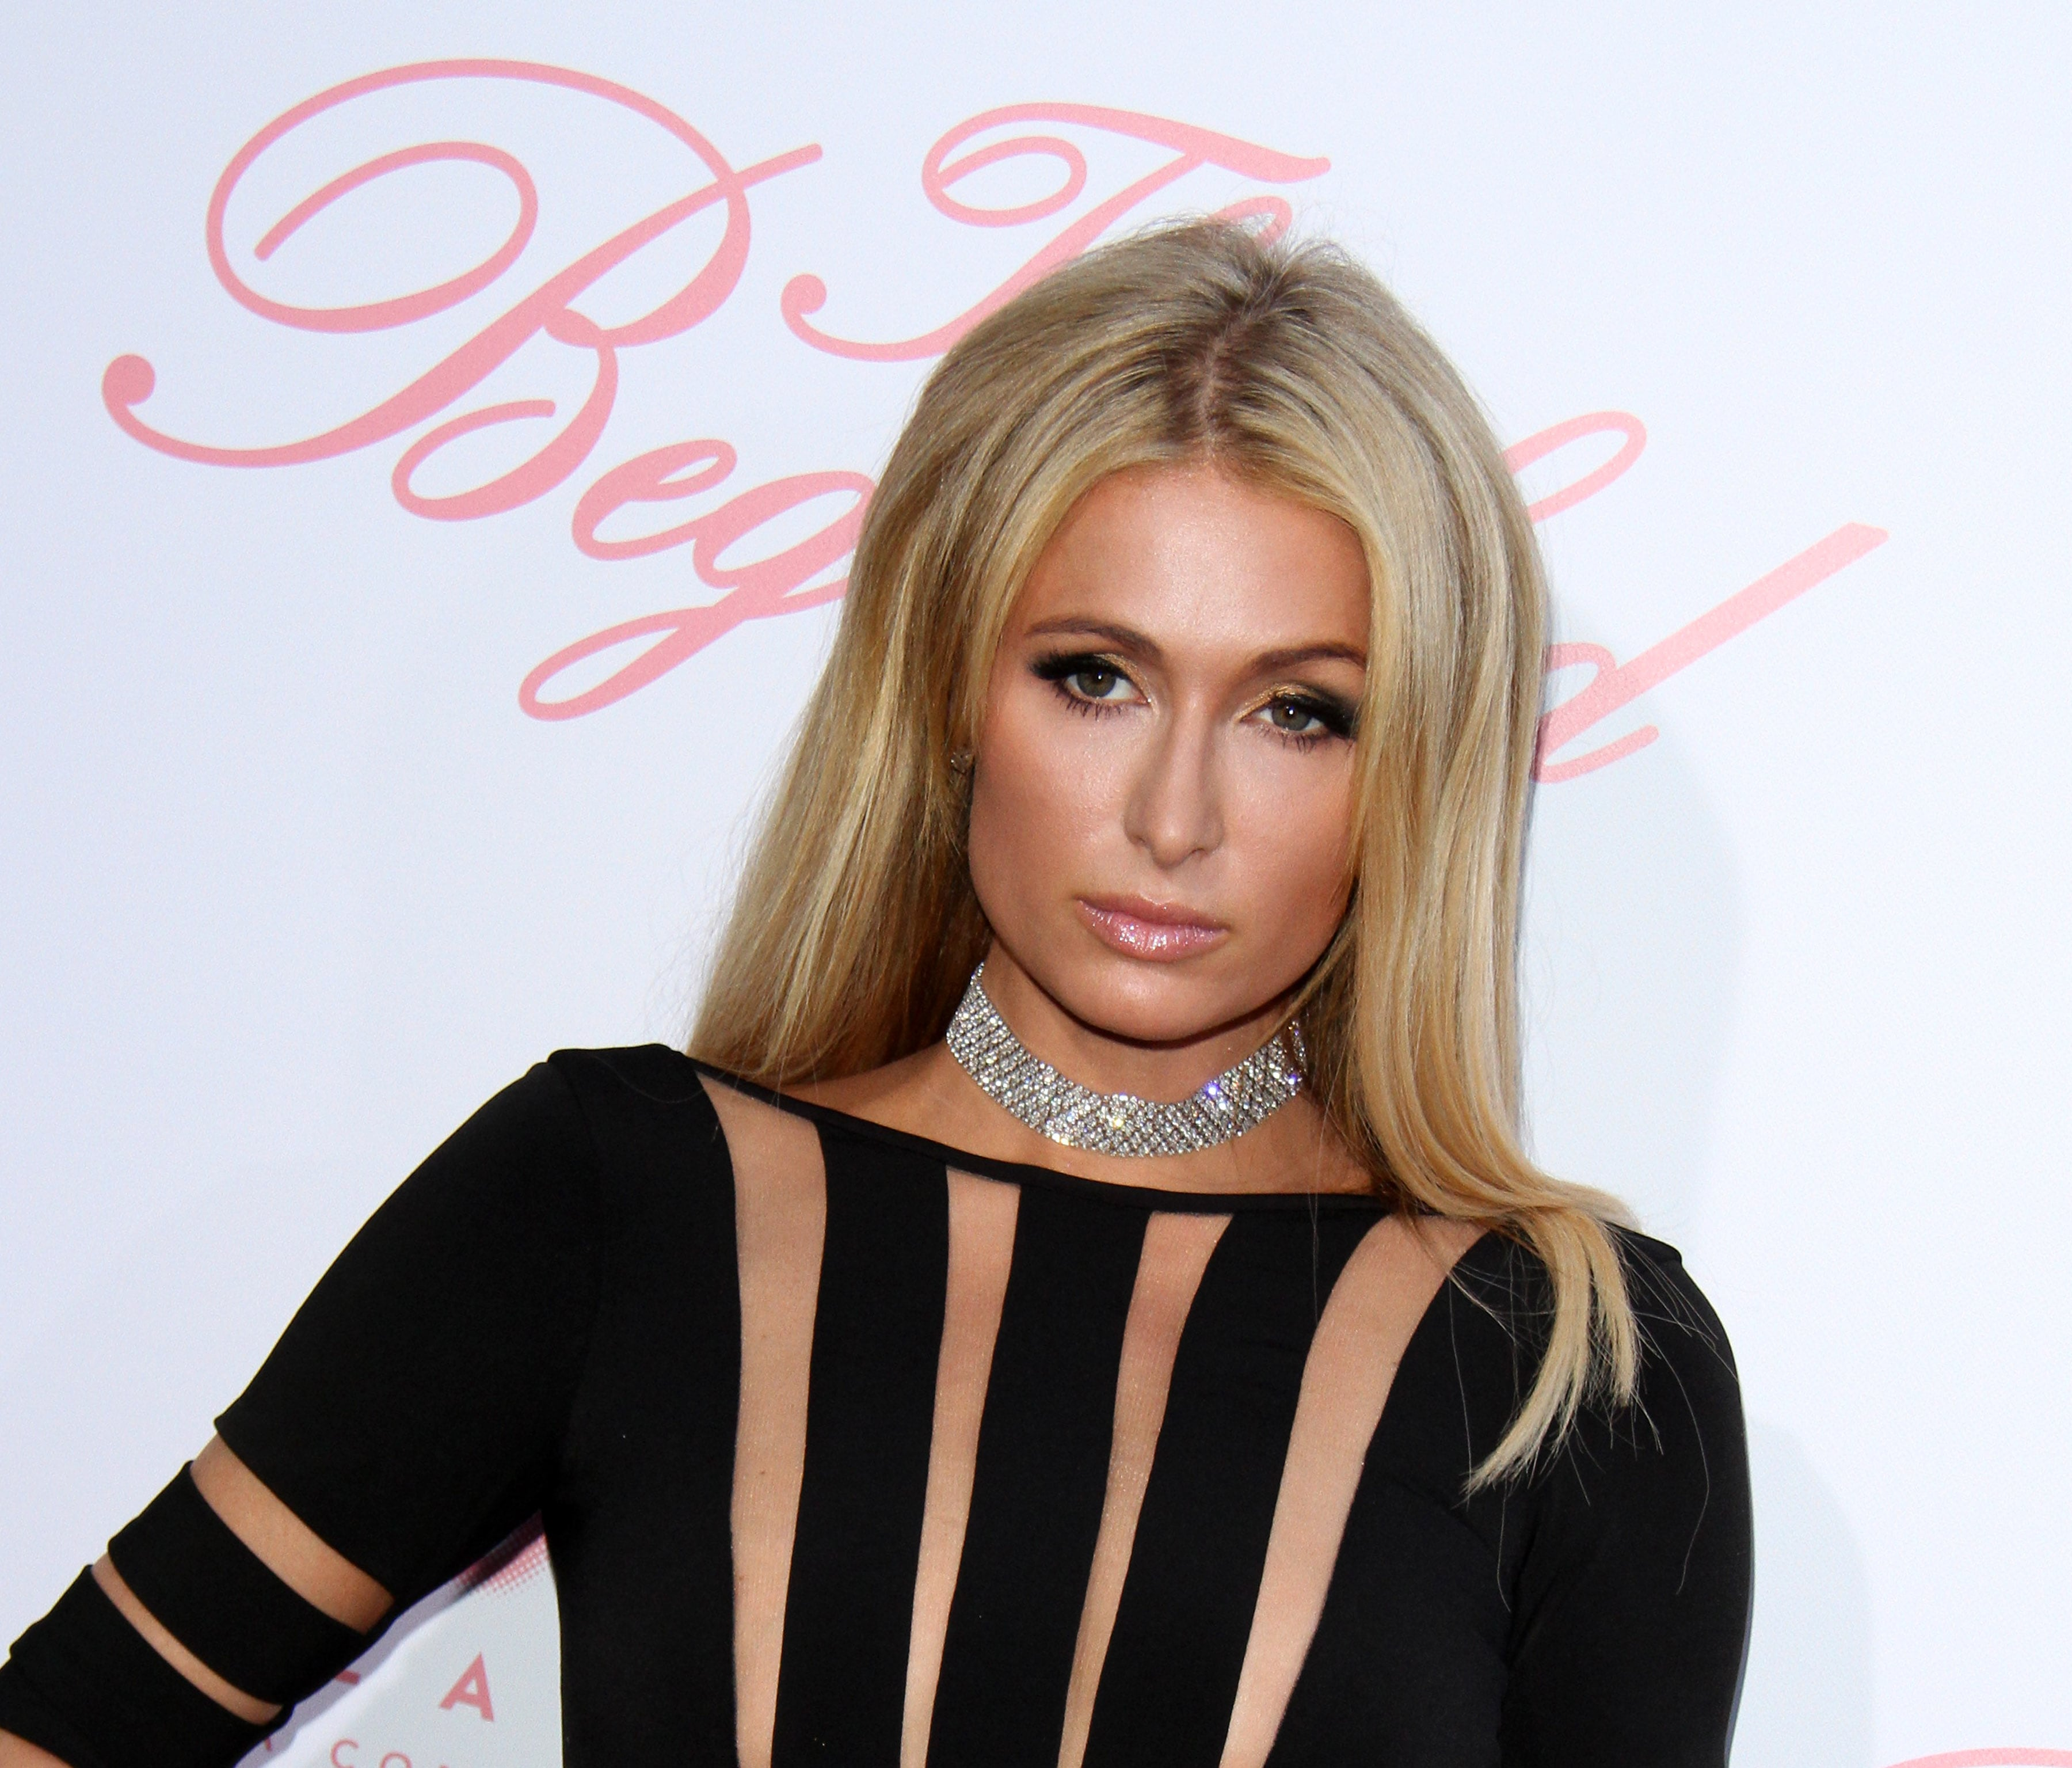 Paris Hilton, Lea Michele and other celebrities had to evacuate their homes in Southern California due to the wildfires that started on Wednesday. (Photo: WENN)